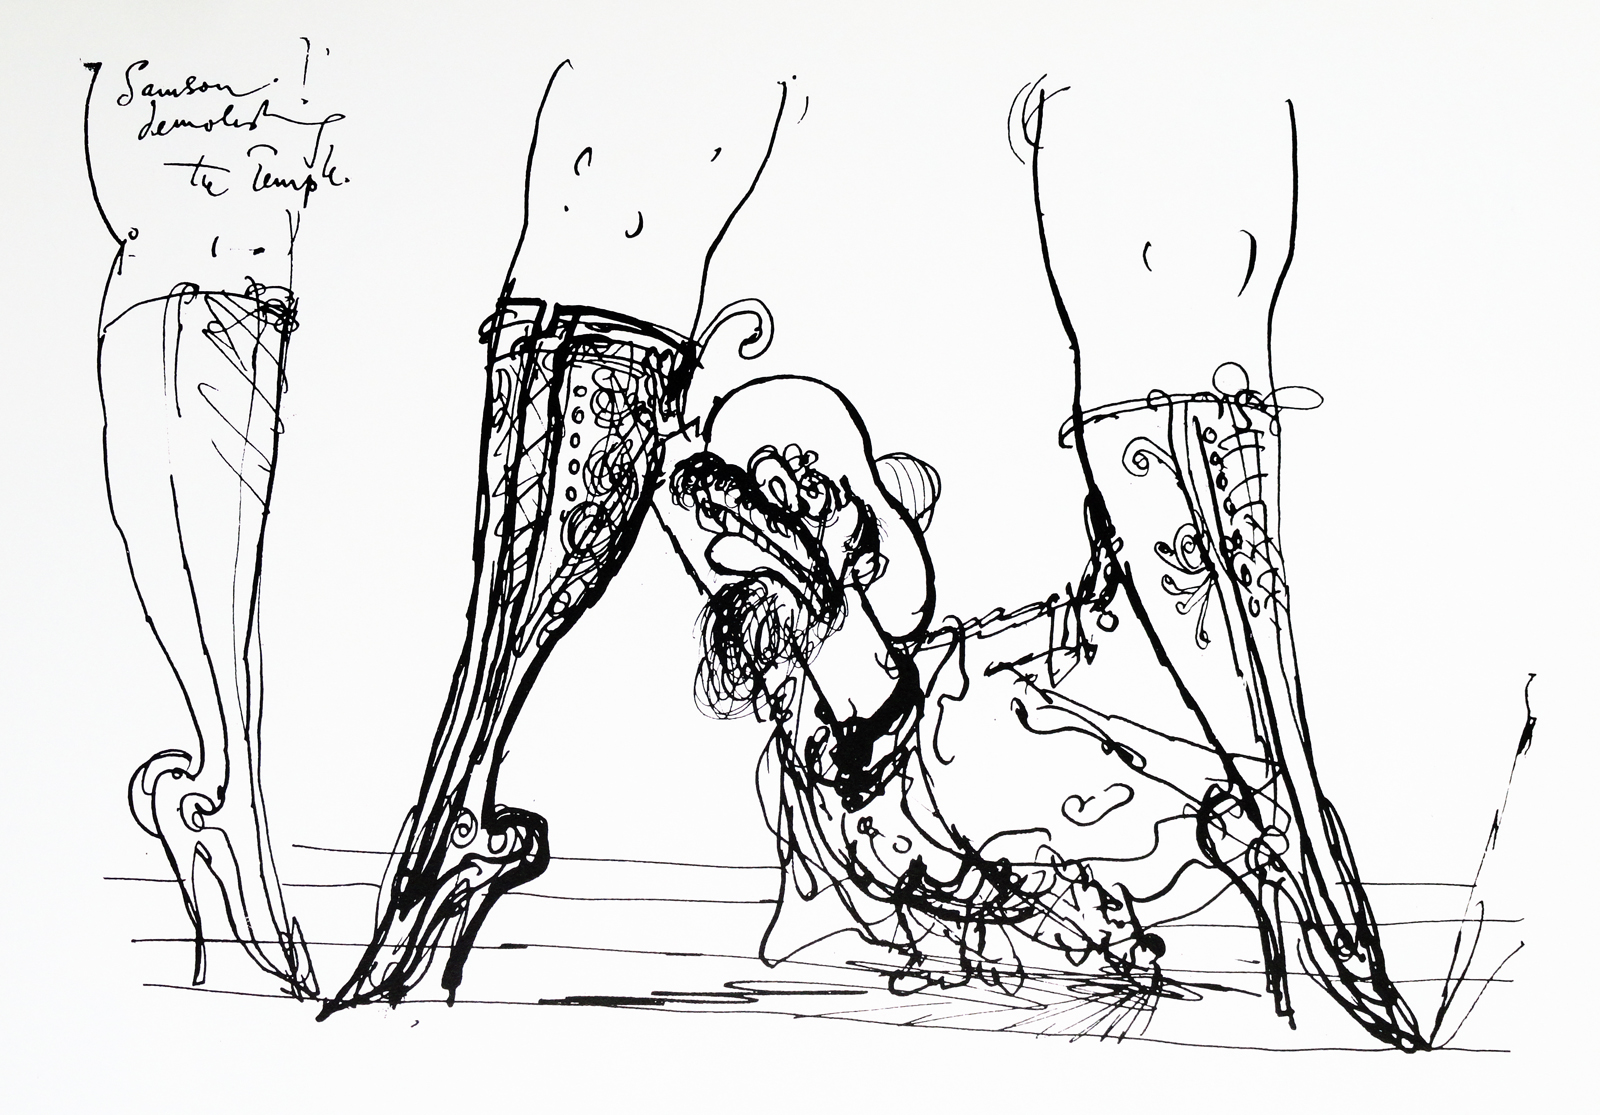 ronald searle s toulouse lautrec One1more2time3 39 s Weblog